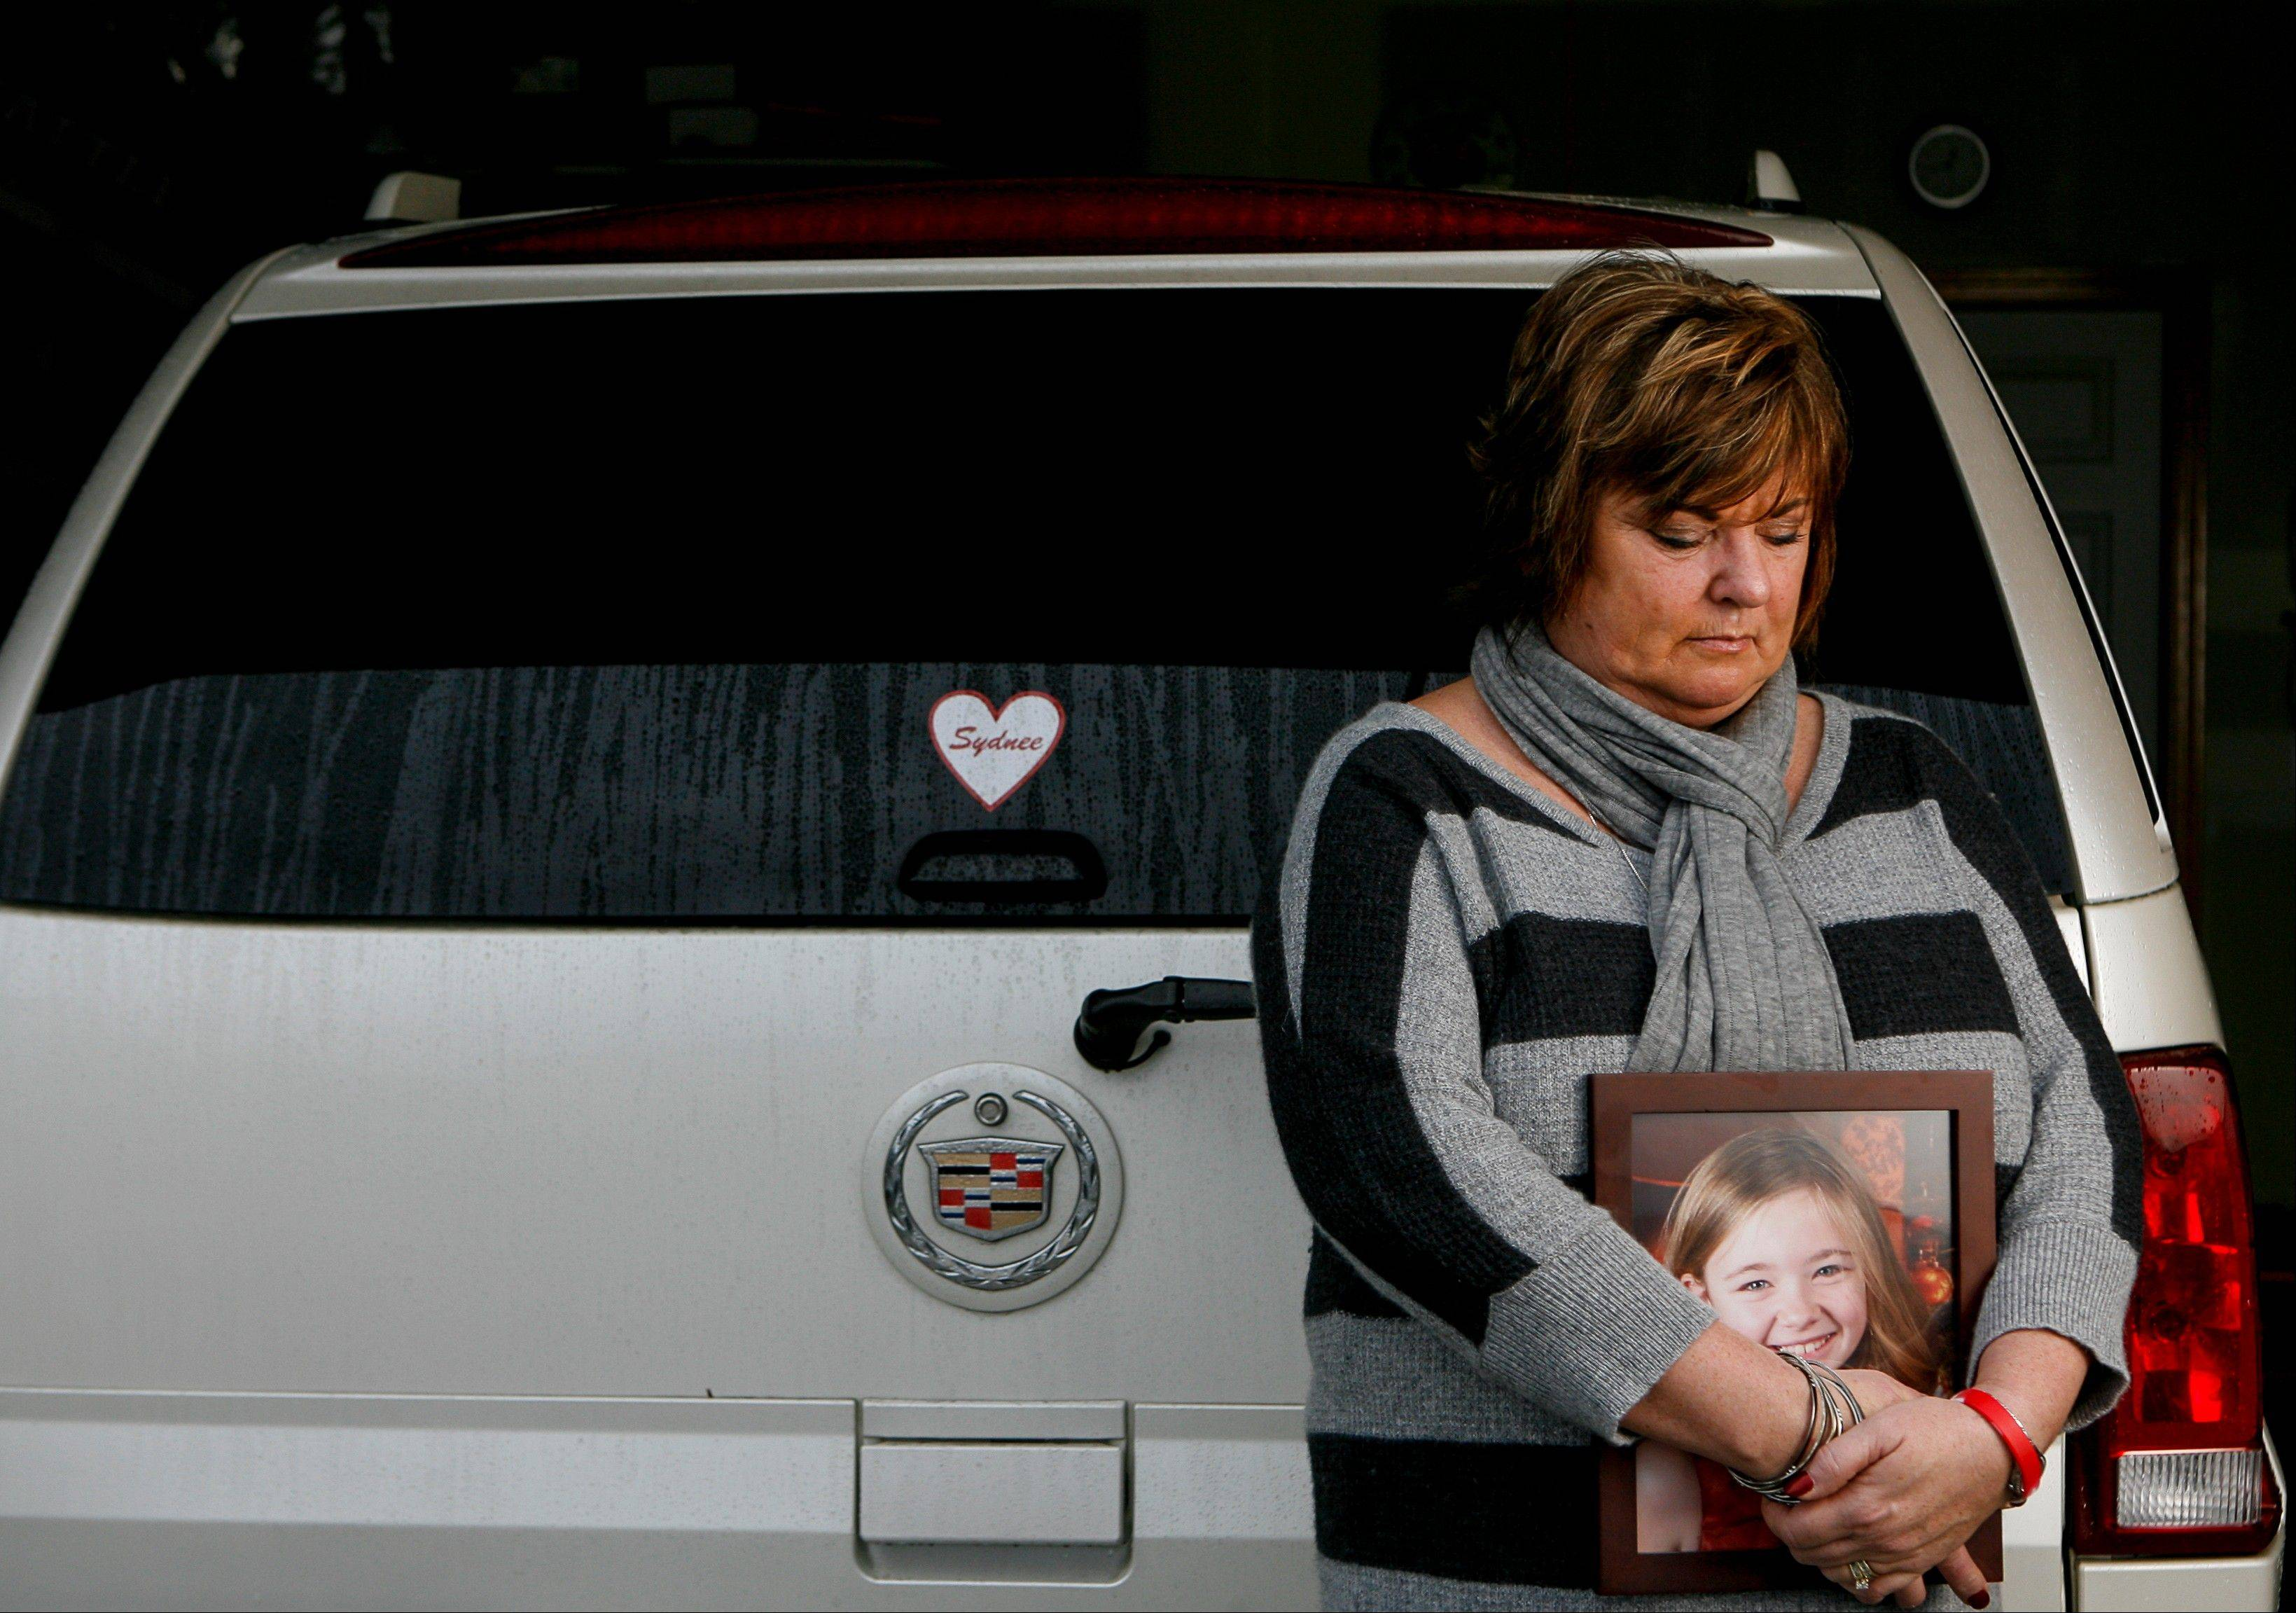 Judy Neiman holds a photo of her daughter, Sydnee, in front of her 2006 Cadillac Escalade at her home in West Richland, Wash. Sydnee died in late 2011 after Neiman accidentally backed over her with the SUV. Although there is a law in place that calls for new manufacturing requirements to improve the visibility behind passenger vehicles, the standards have yet to be mandated because of delays by the U.S. Department of Transportation.